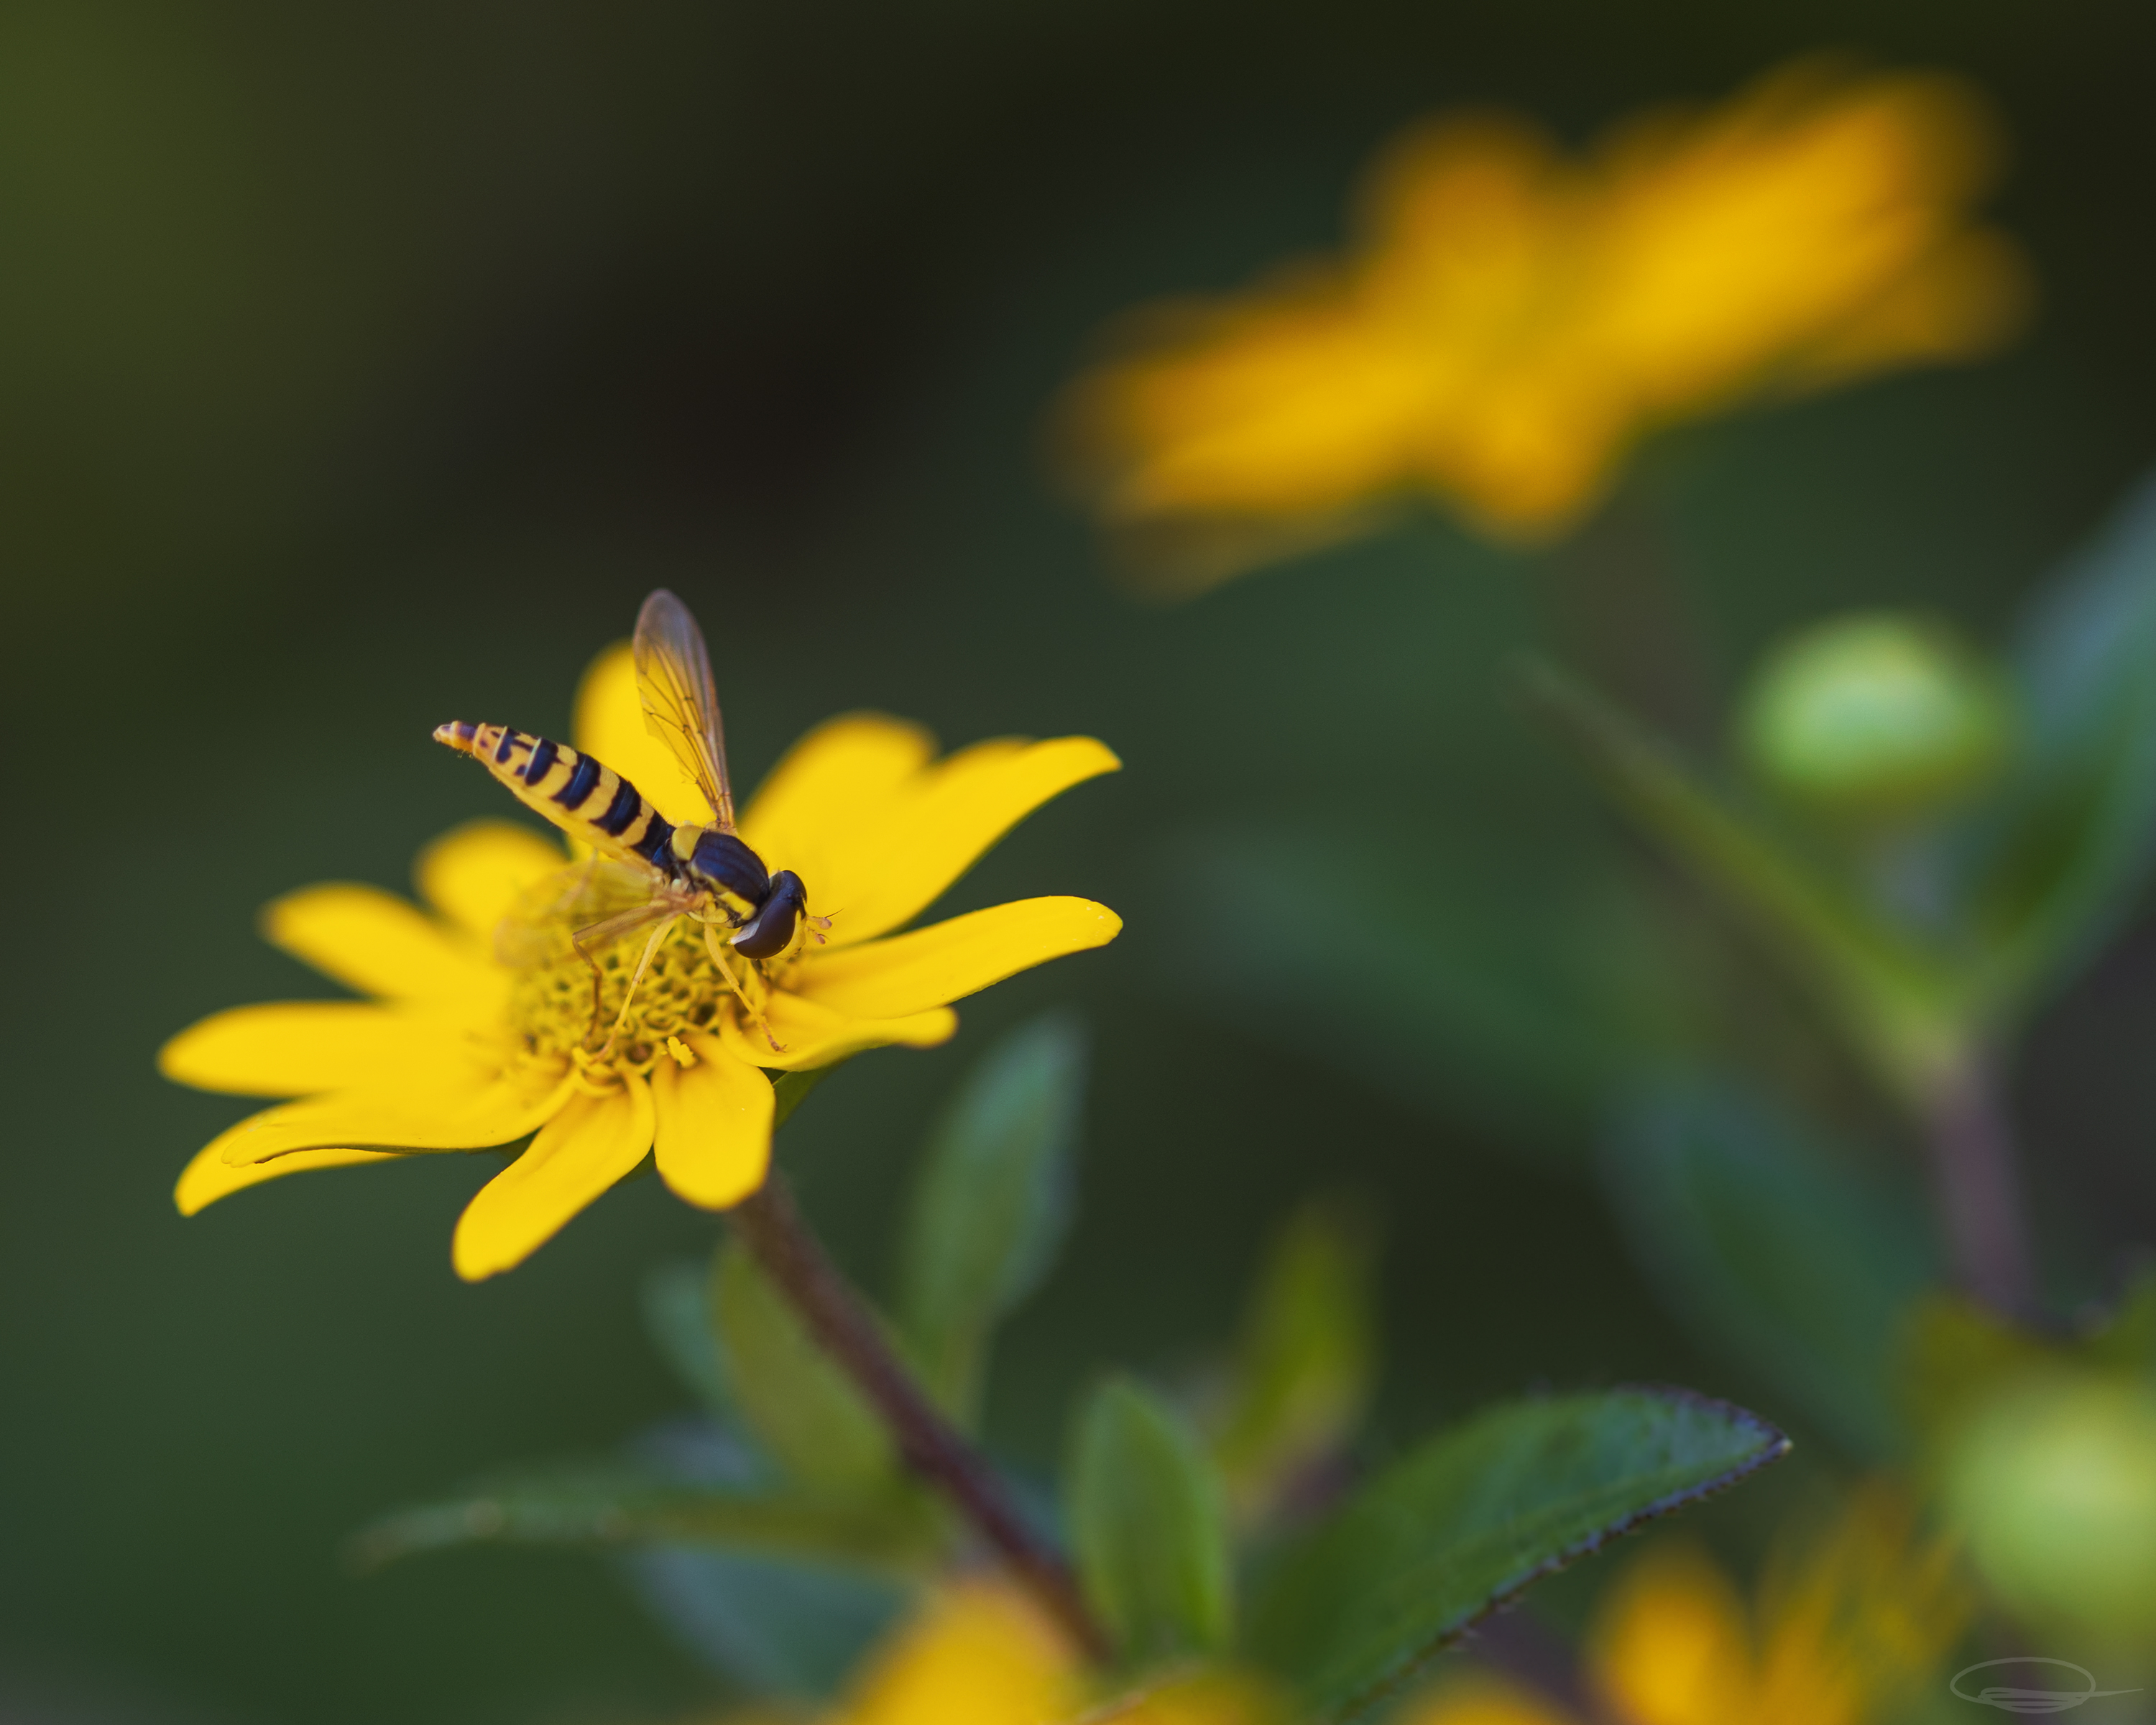 Slim Hoverfly on Yellow Flower